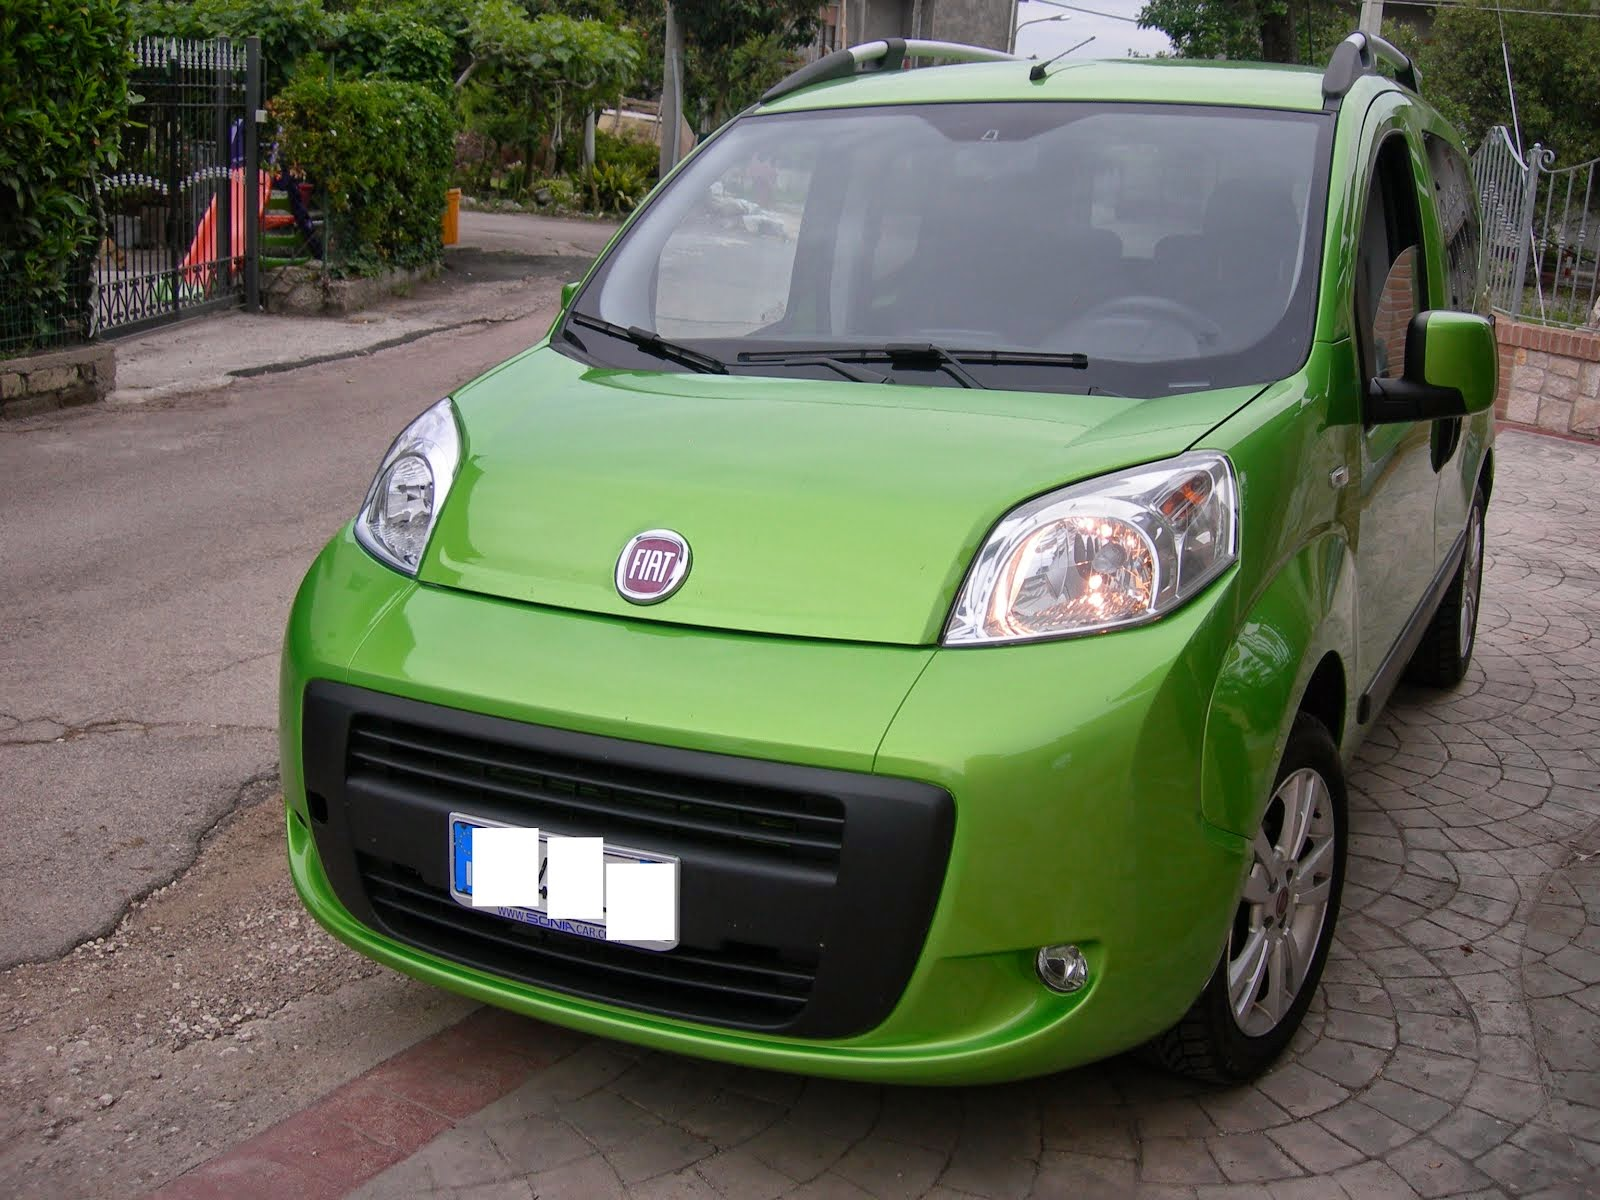 Fiat Qubo 1.4 Metano mylife Natural Power anno 2010 acc.full optional 8.000,00 Euro